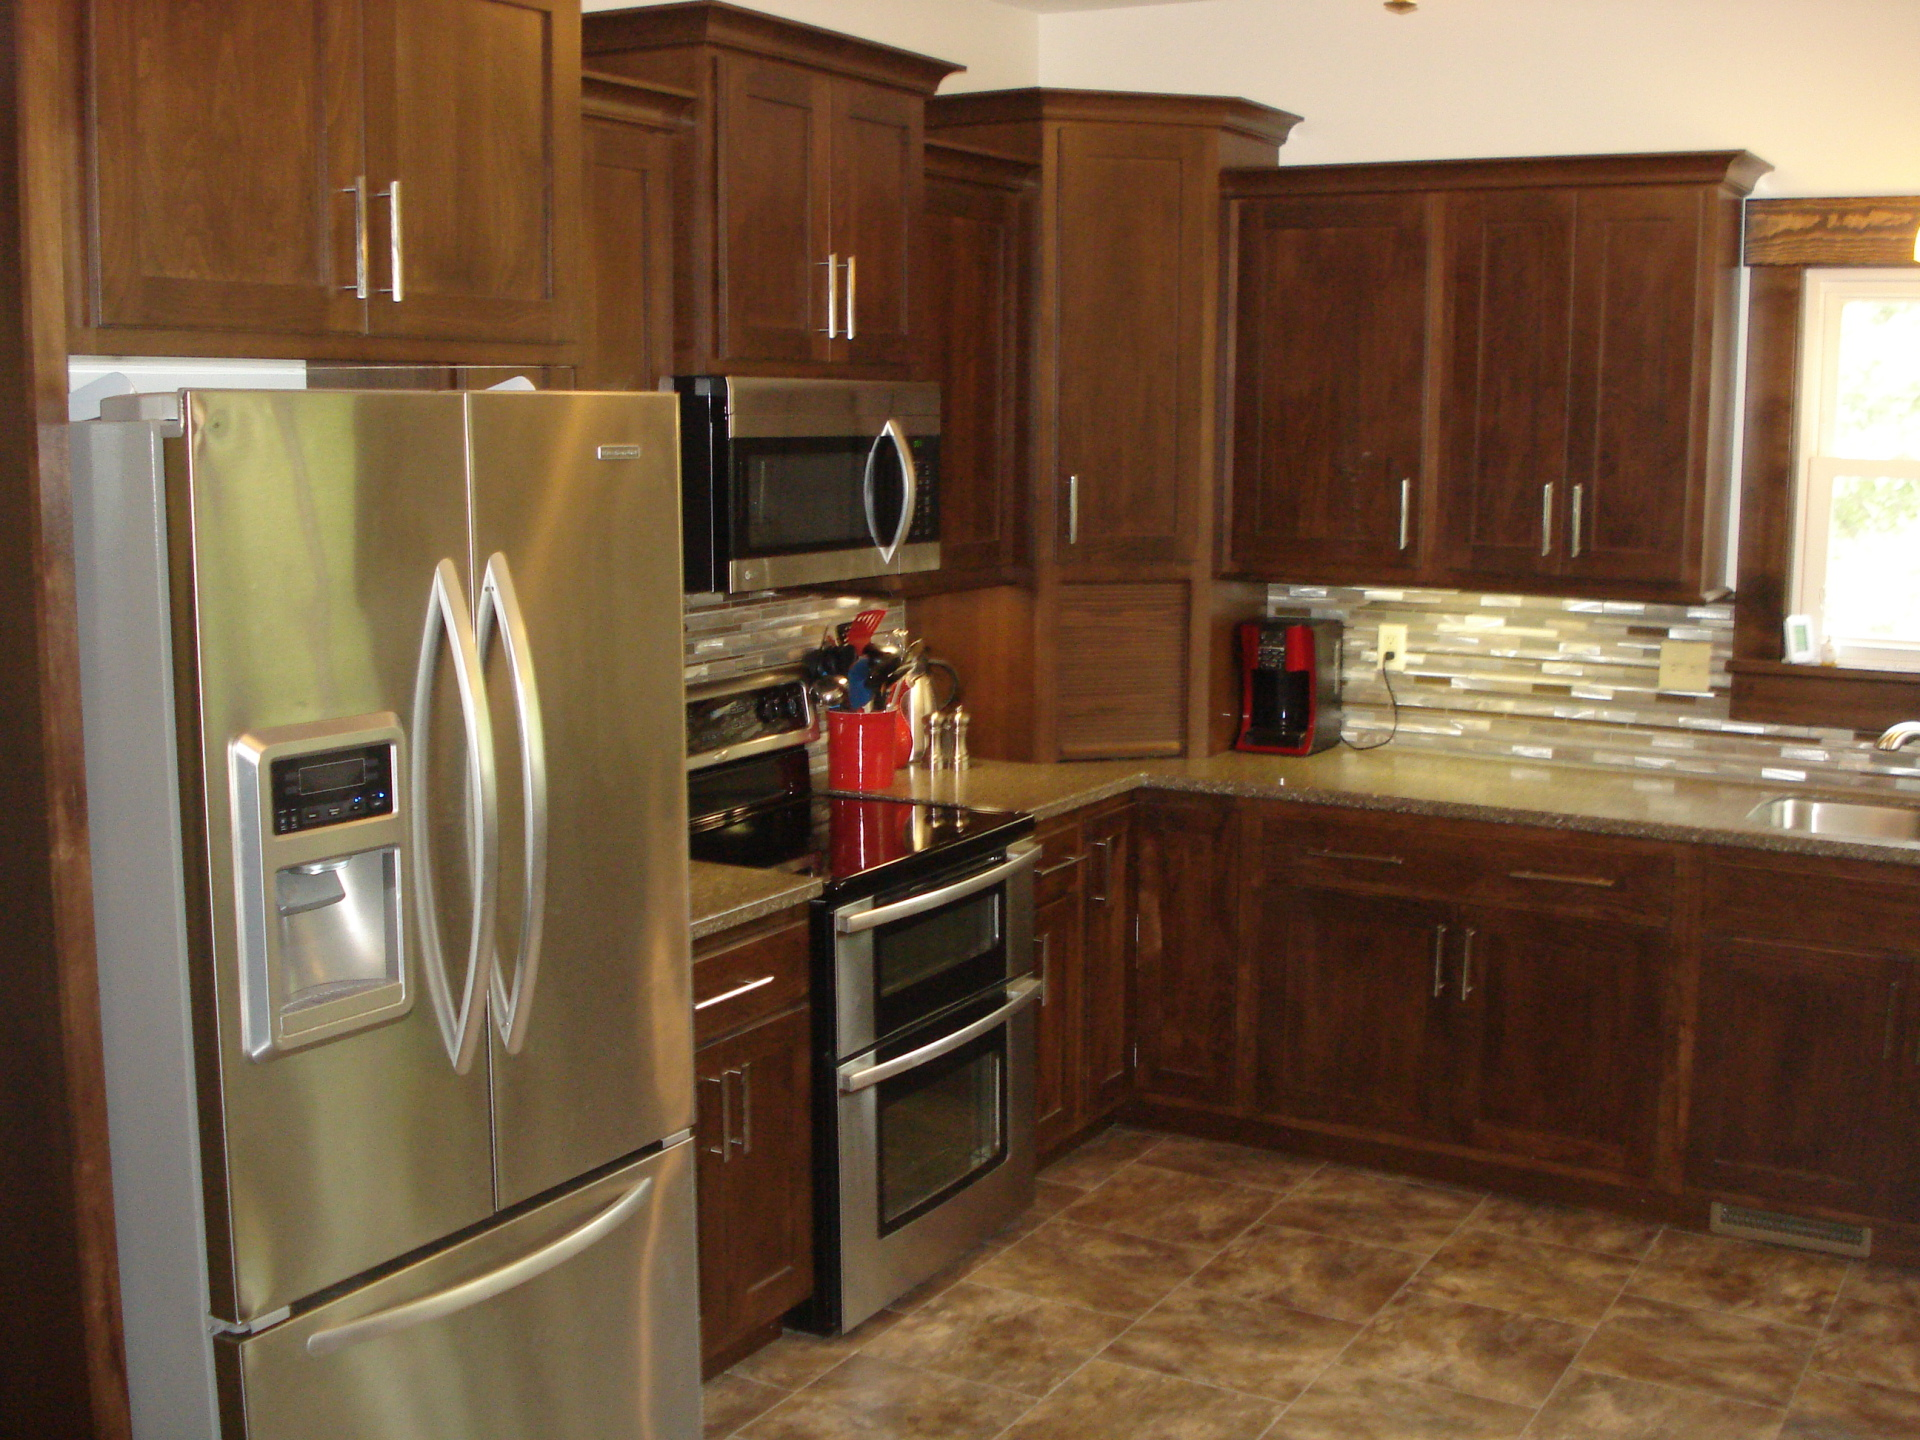 View of kitchen| Linn| Kansas| house for sale